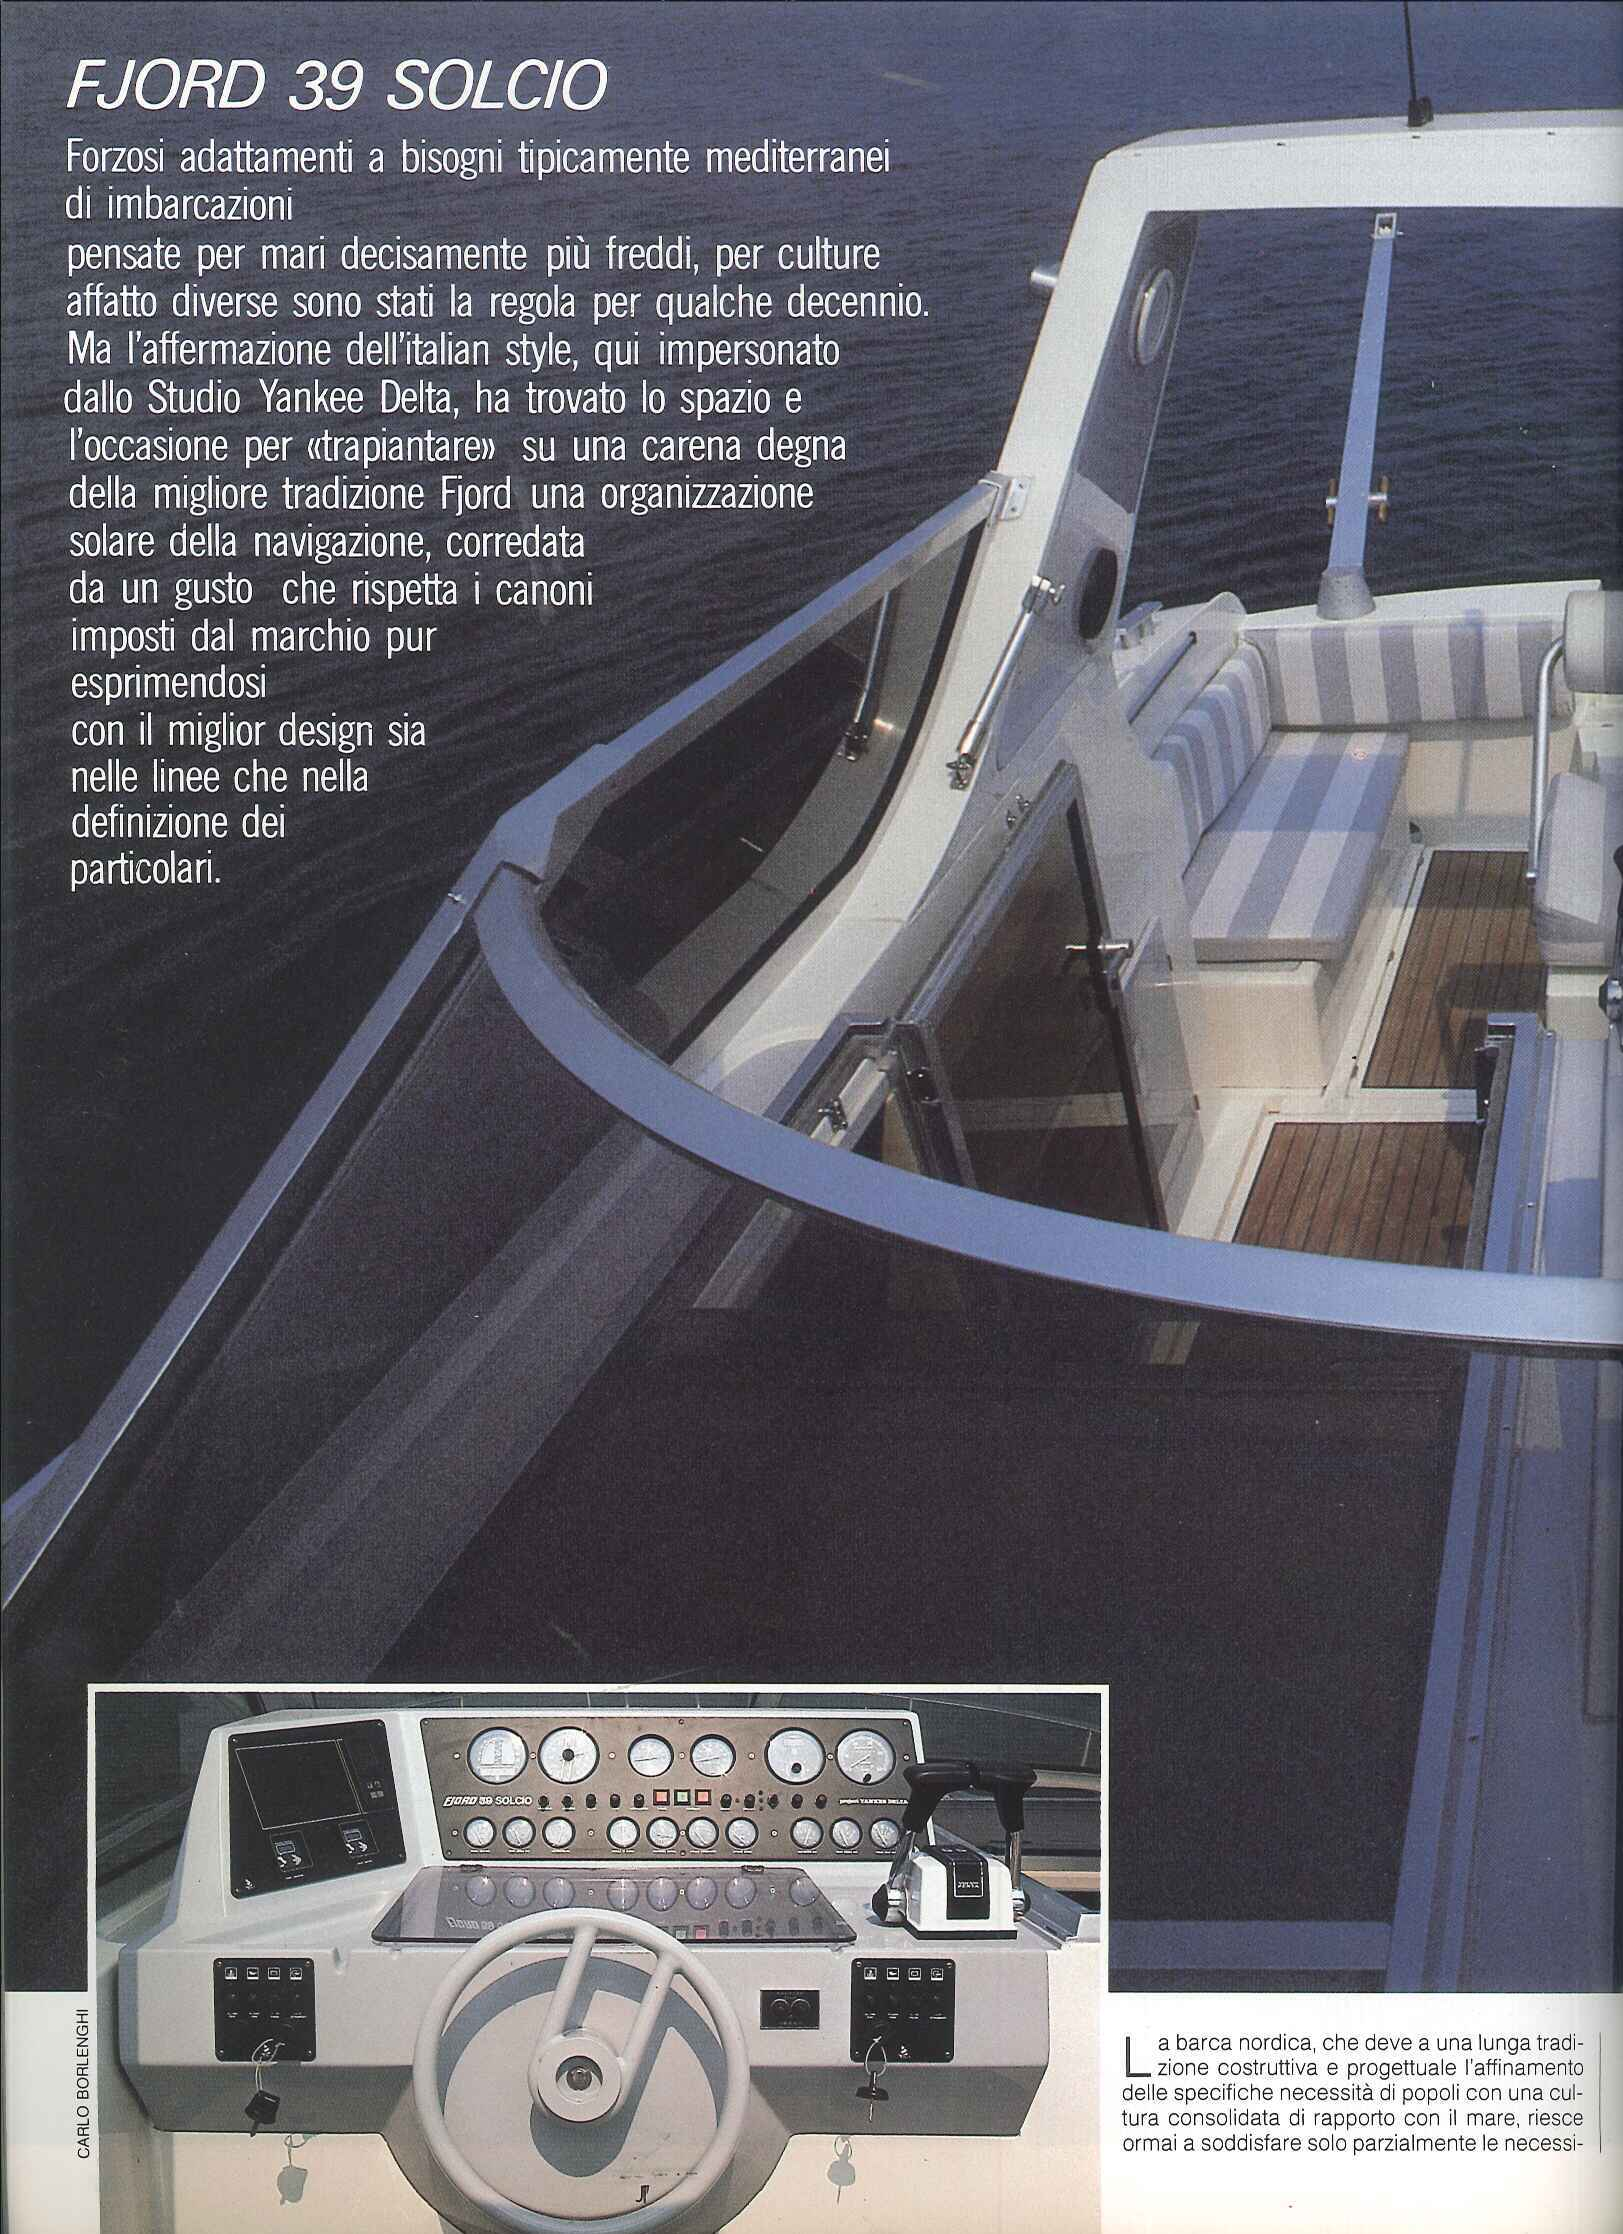 1986 09 PRESS FJORD 39 SOLCIO Uomo Mare n° 101 (24).jpg